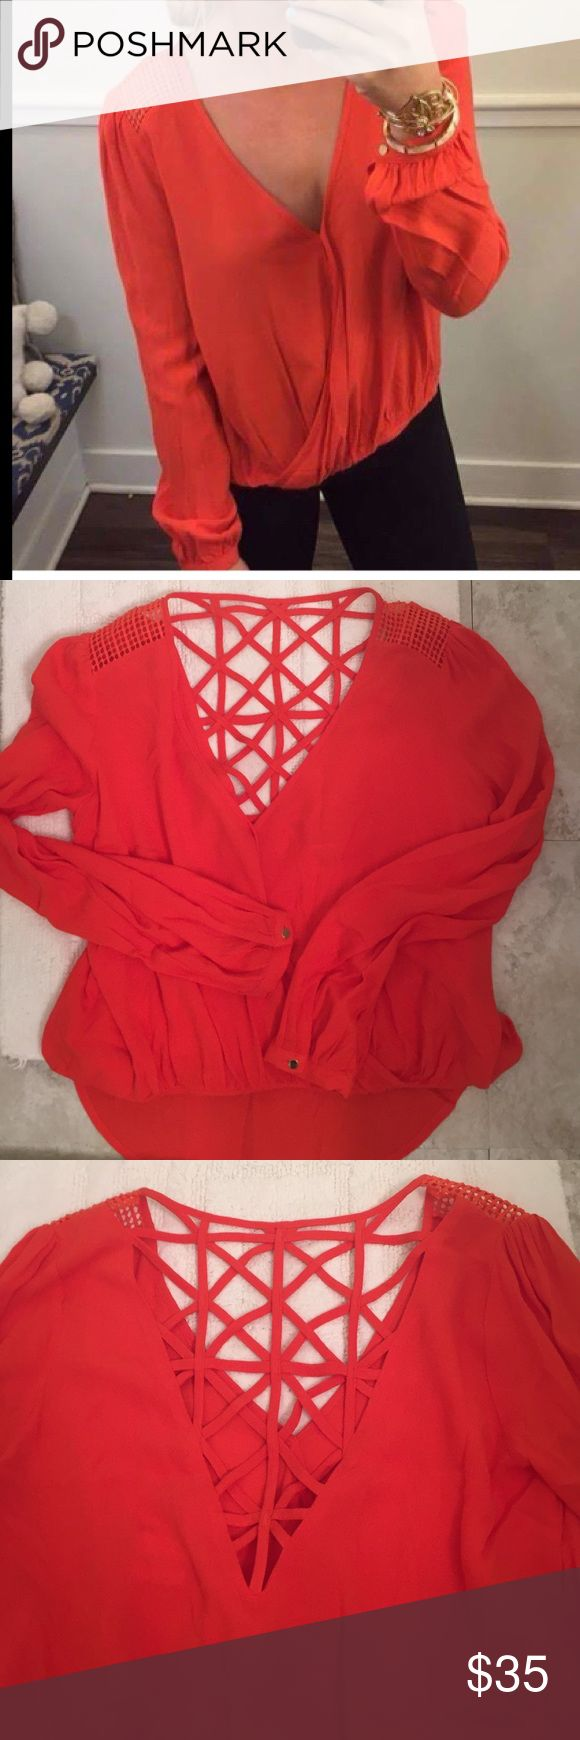 Red/orange long sleeve blouse Red blouse with crochet cut out shoulders. And a lattice cross cross back. Button detail on long sleeves. High low hem. Size medium. NWT. Bought it and it was too big for me. From apricot lane boutique.  Label brand is Onetheland. apricot lane boutique Tops Blouses